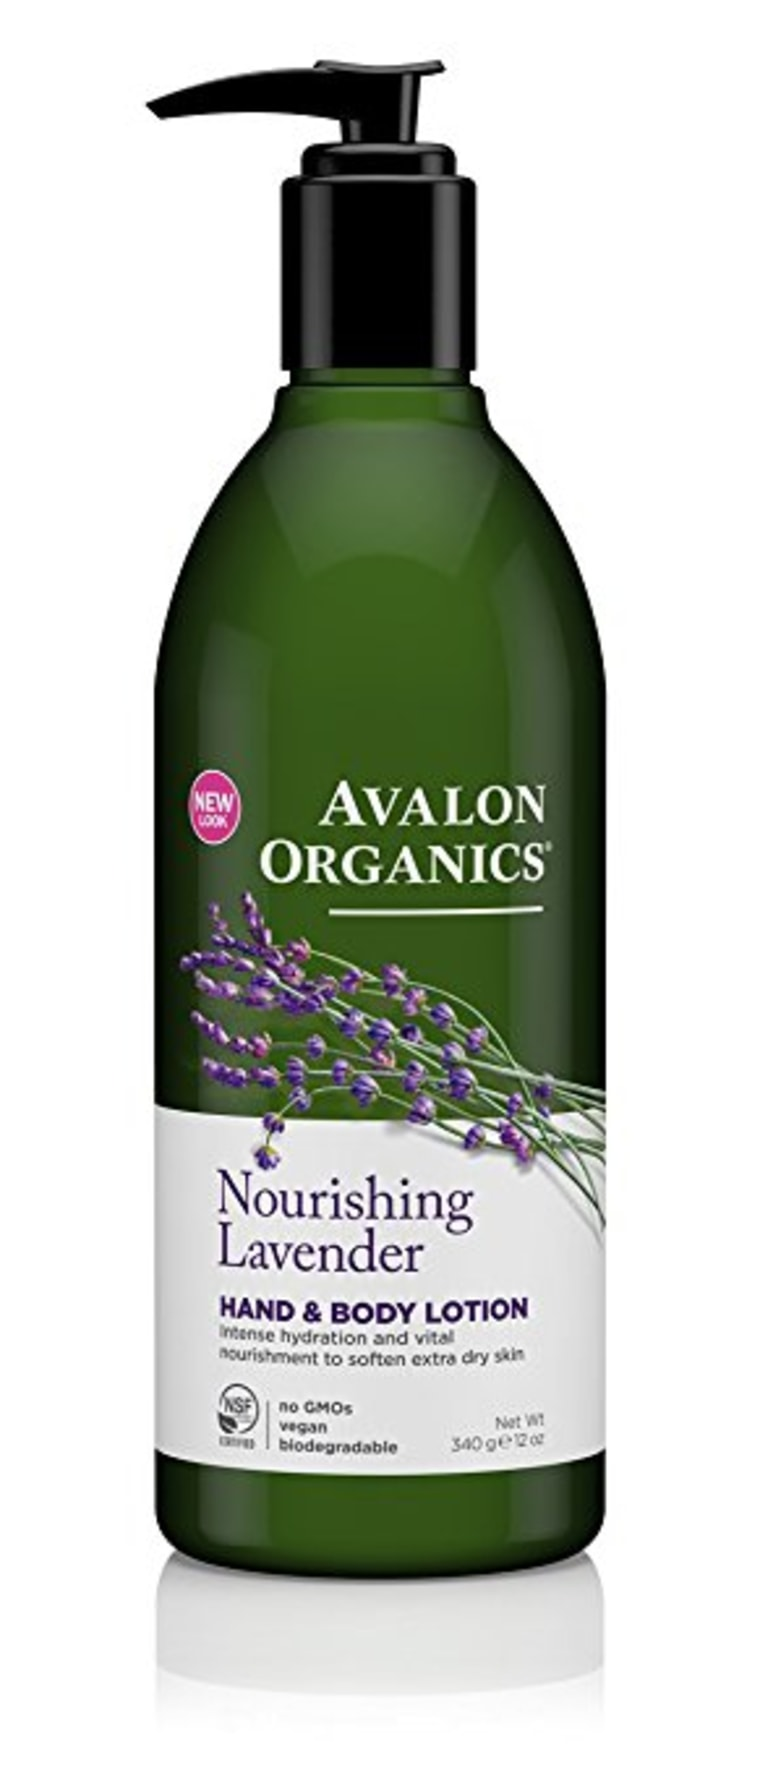 Avalon Organics Lavender Hand & Body Lotion